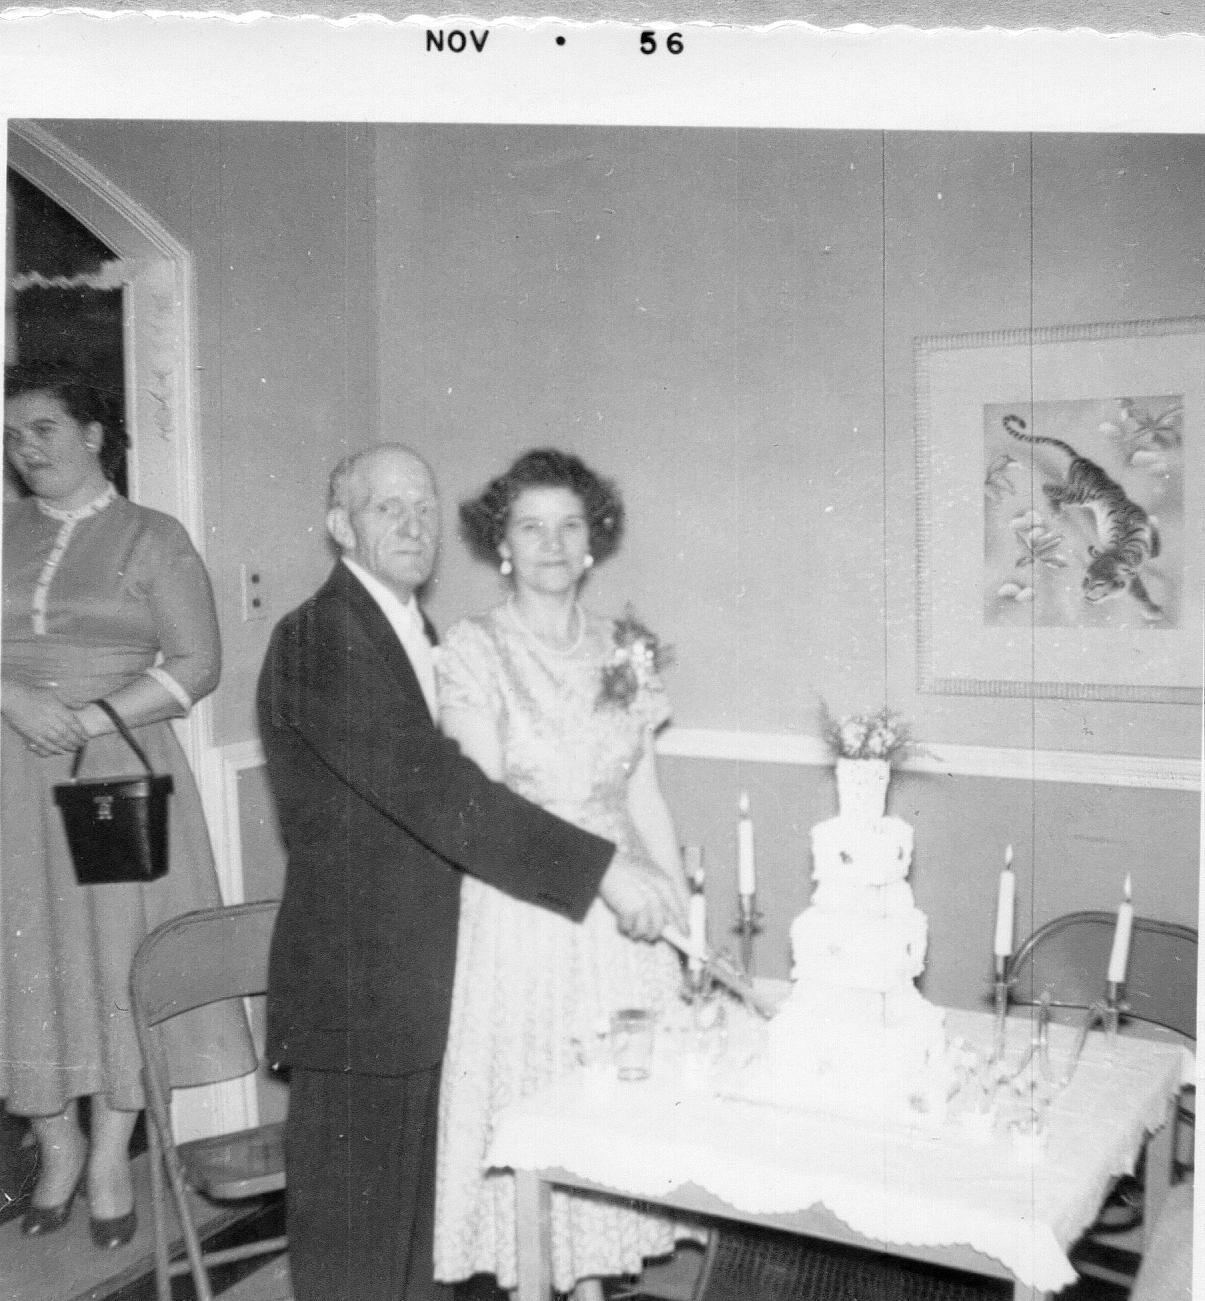 Edith & Willie Hill 1956